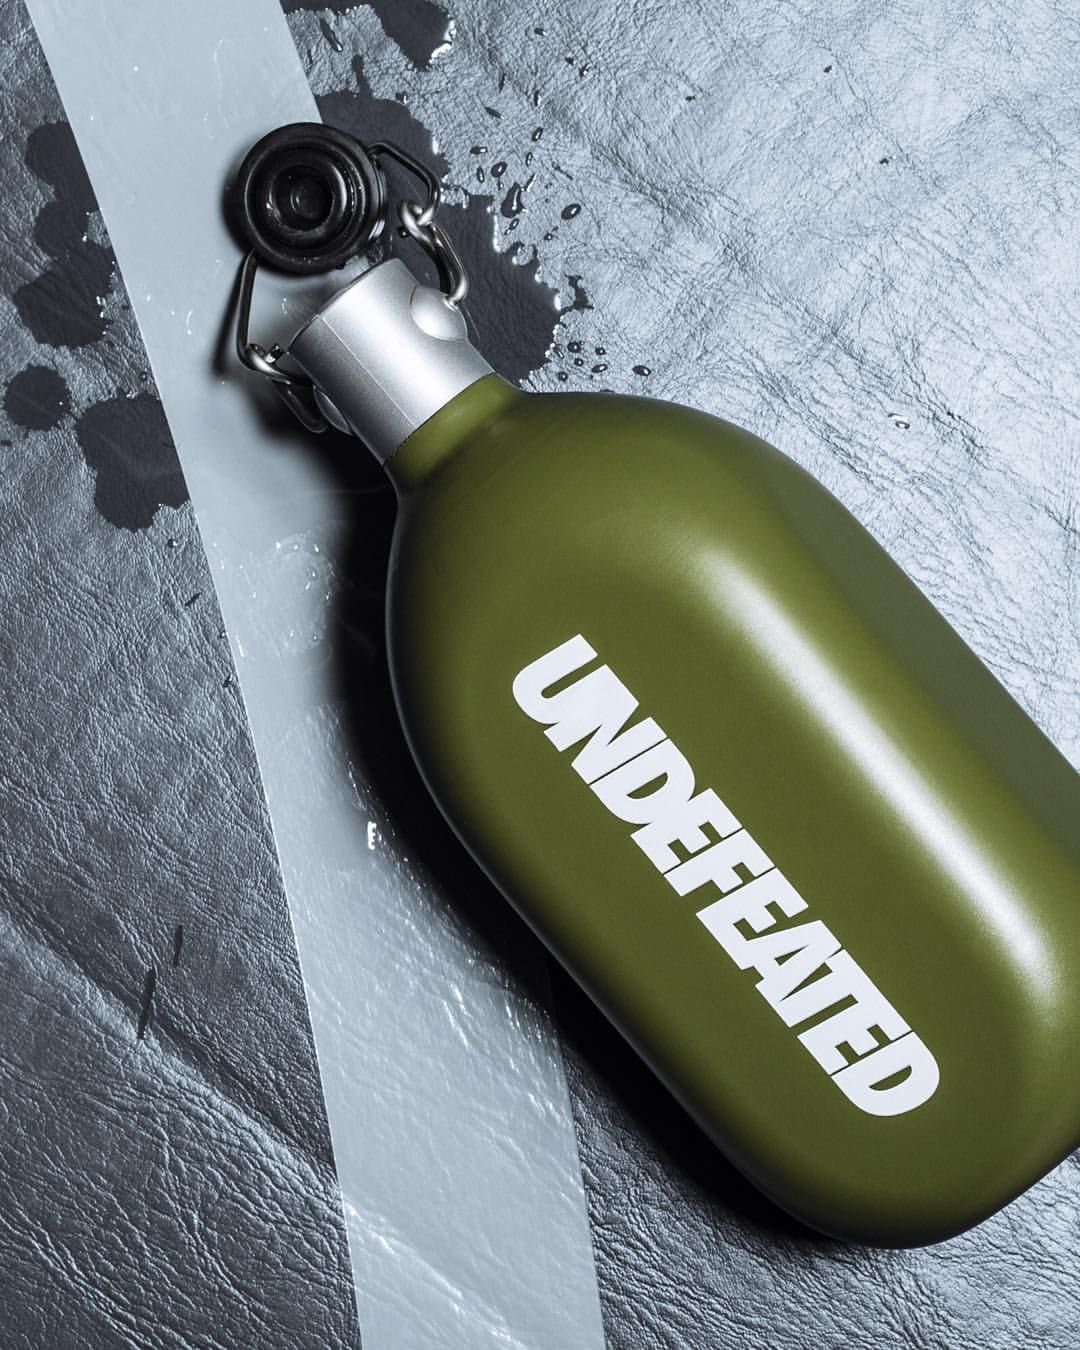 Undefeated Lightweight Aluminum 34 oz Canteen // Available now at All Undefeated Chapter Stores and Undefeated.com